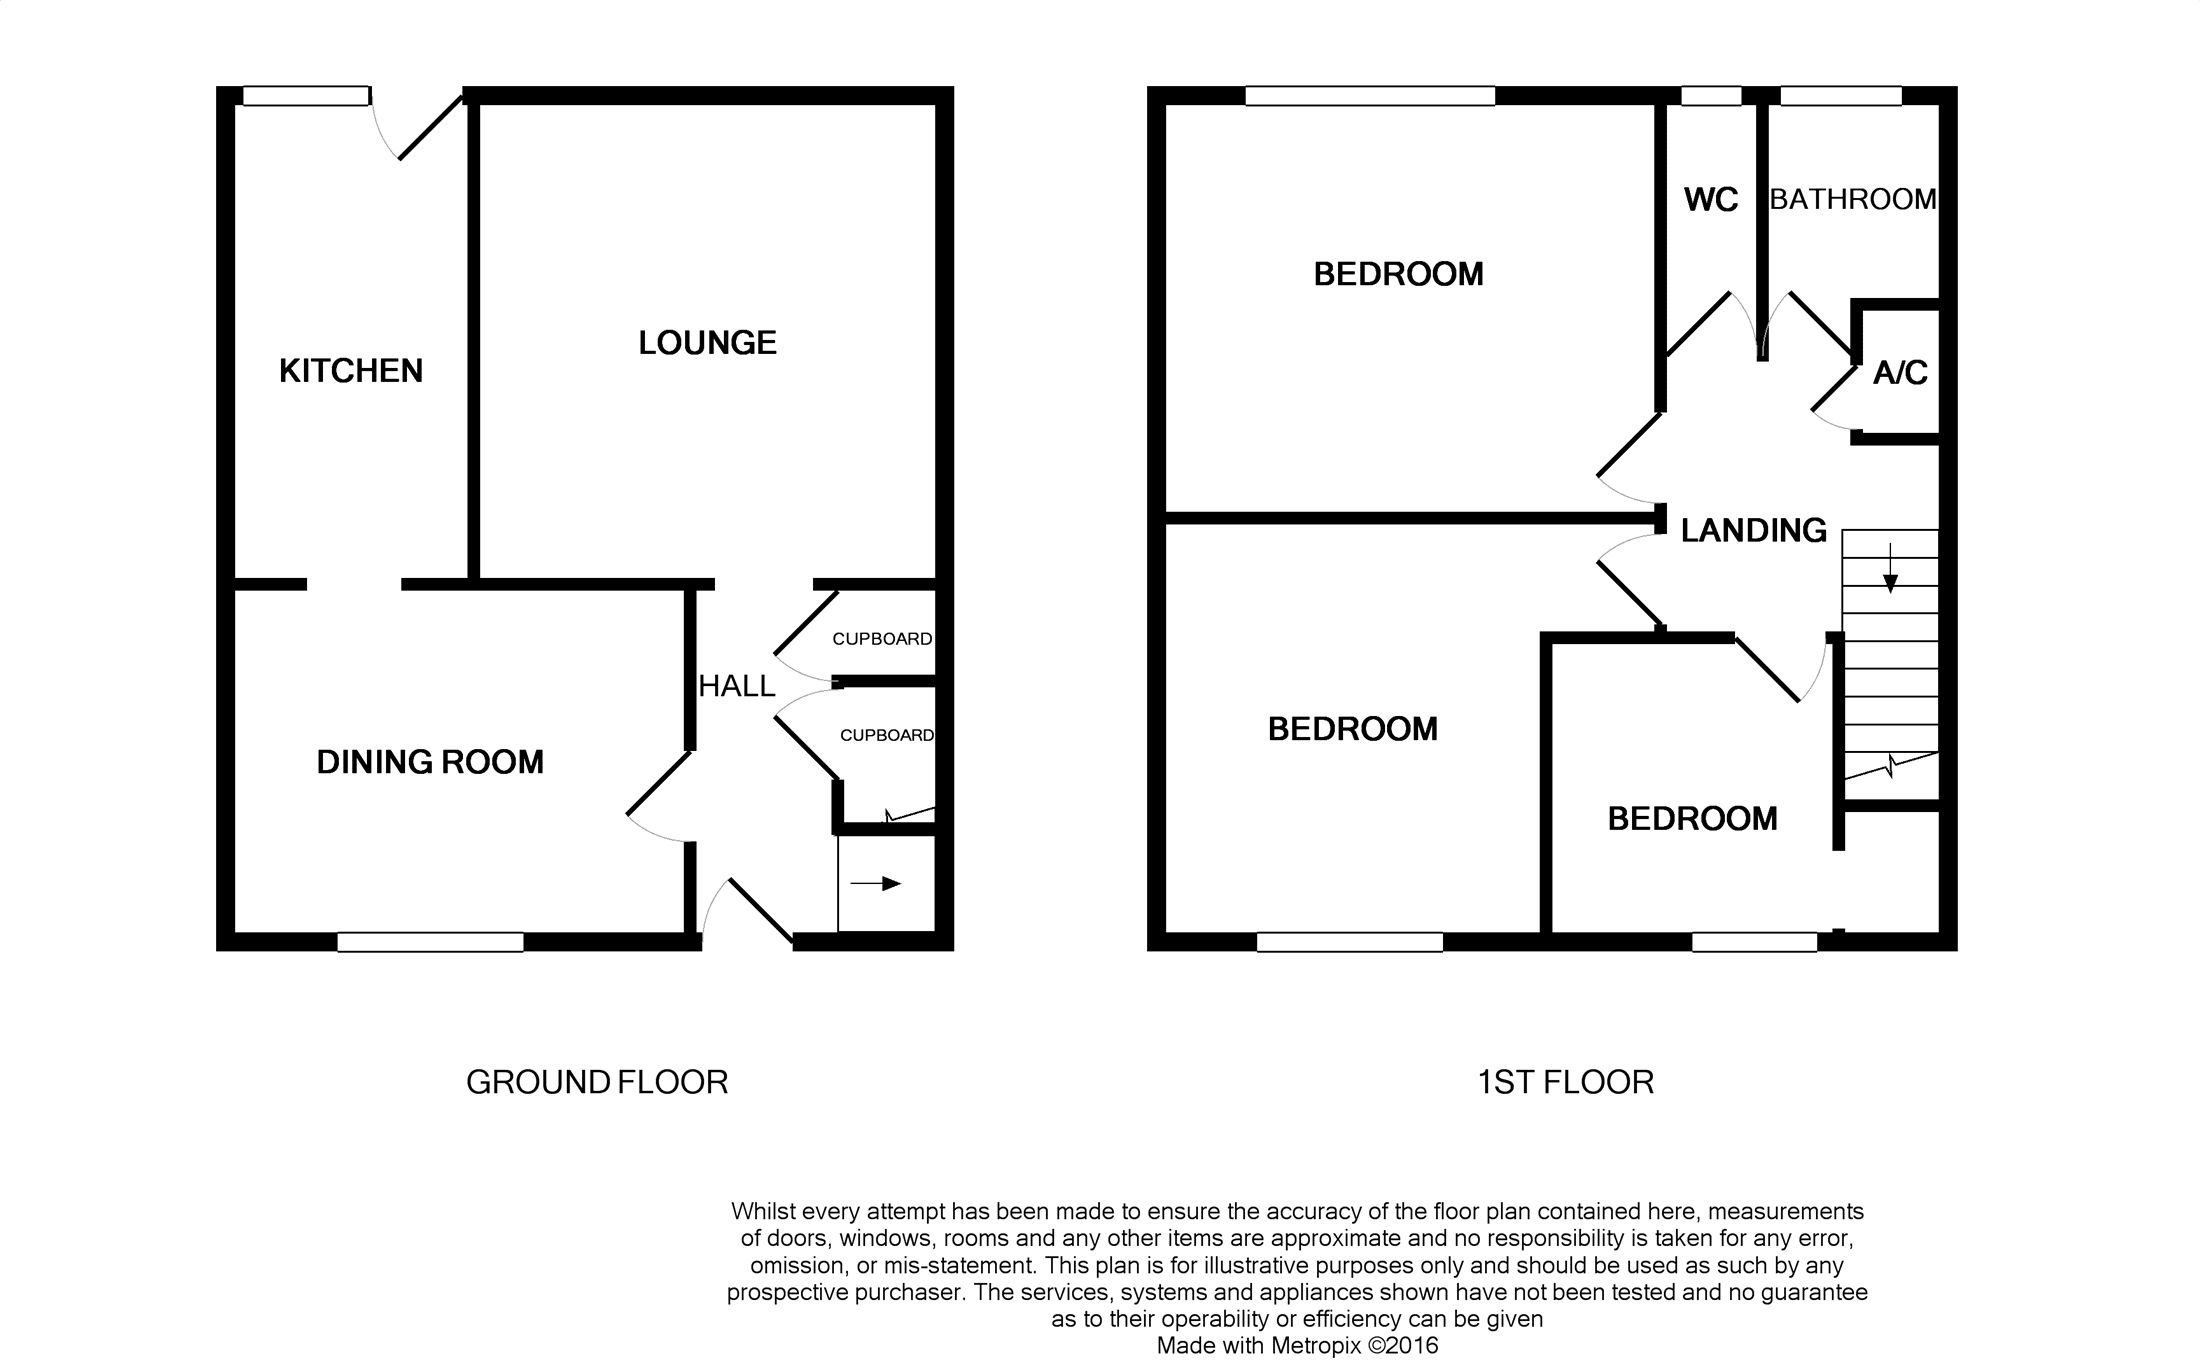 Outhouse Drawings Plans Diy Free Download Flat Bottom Skiff Plans as well Cheap Raised Bed Plans also 45700324 besides Tenant Services in addition The Basement Floor Plan. on outhouse storage